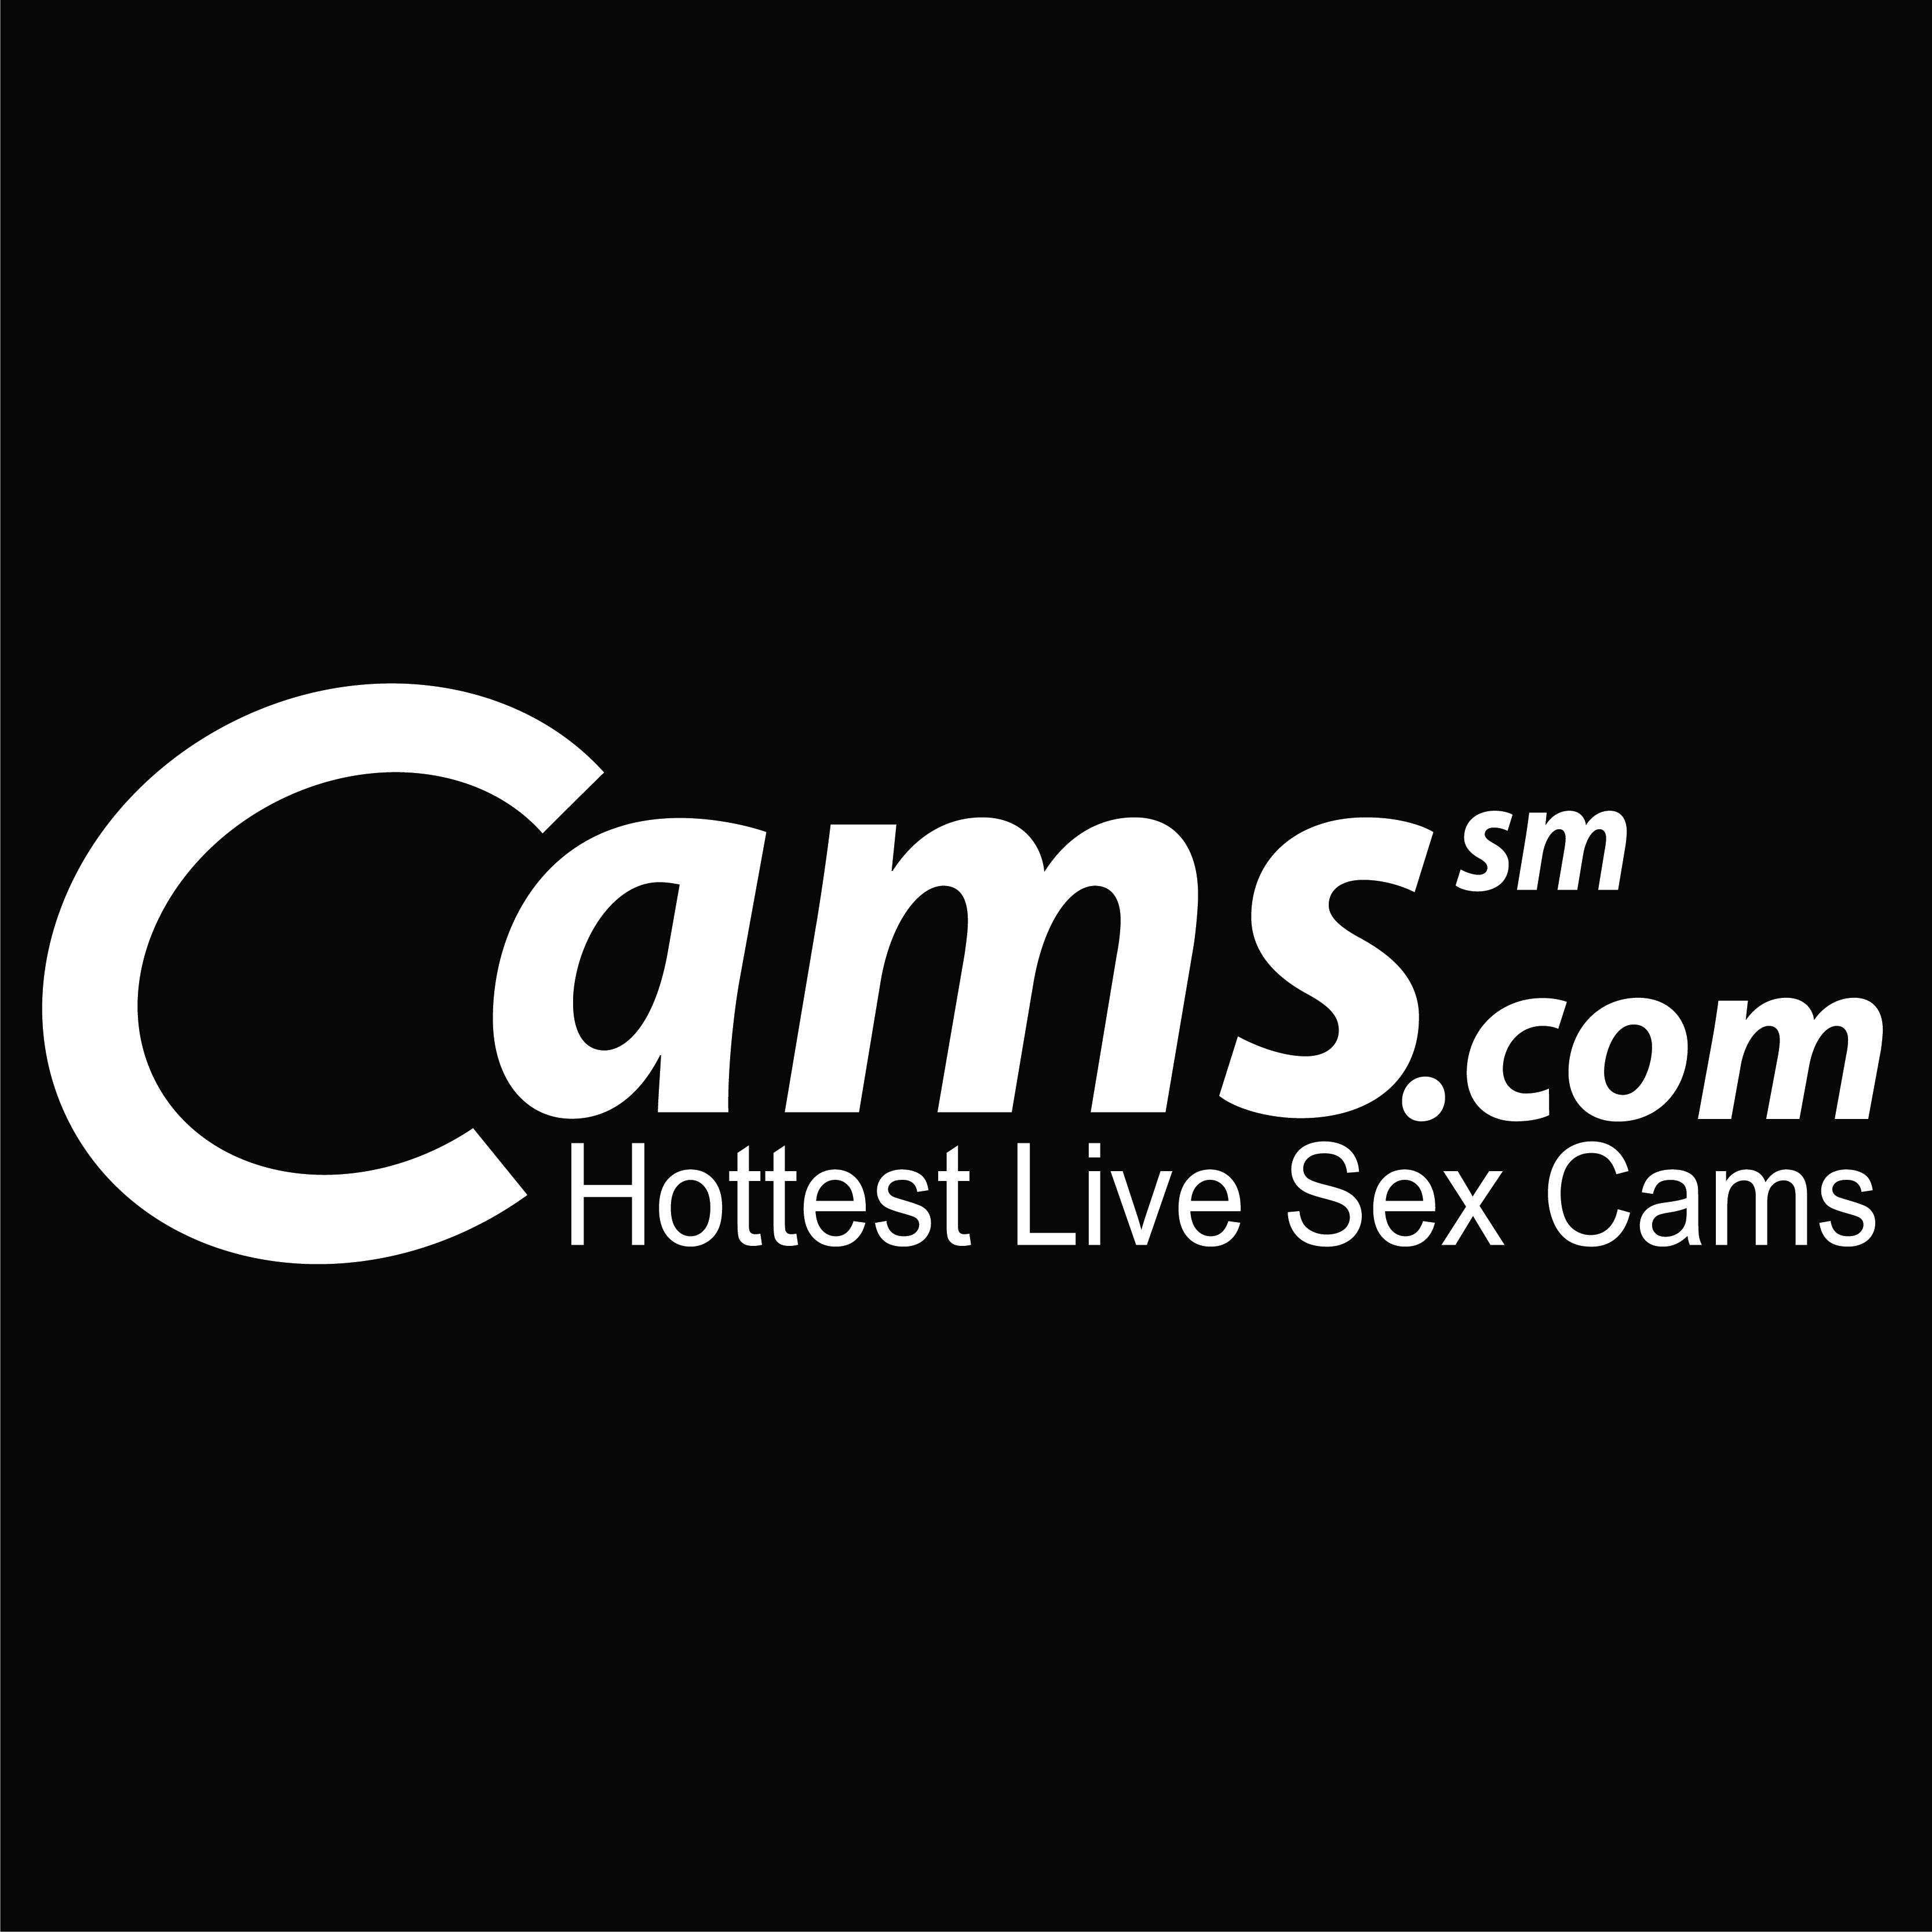 Cams.com in Review